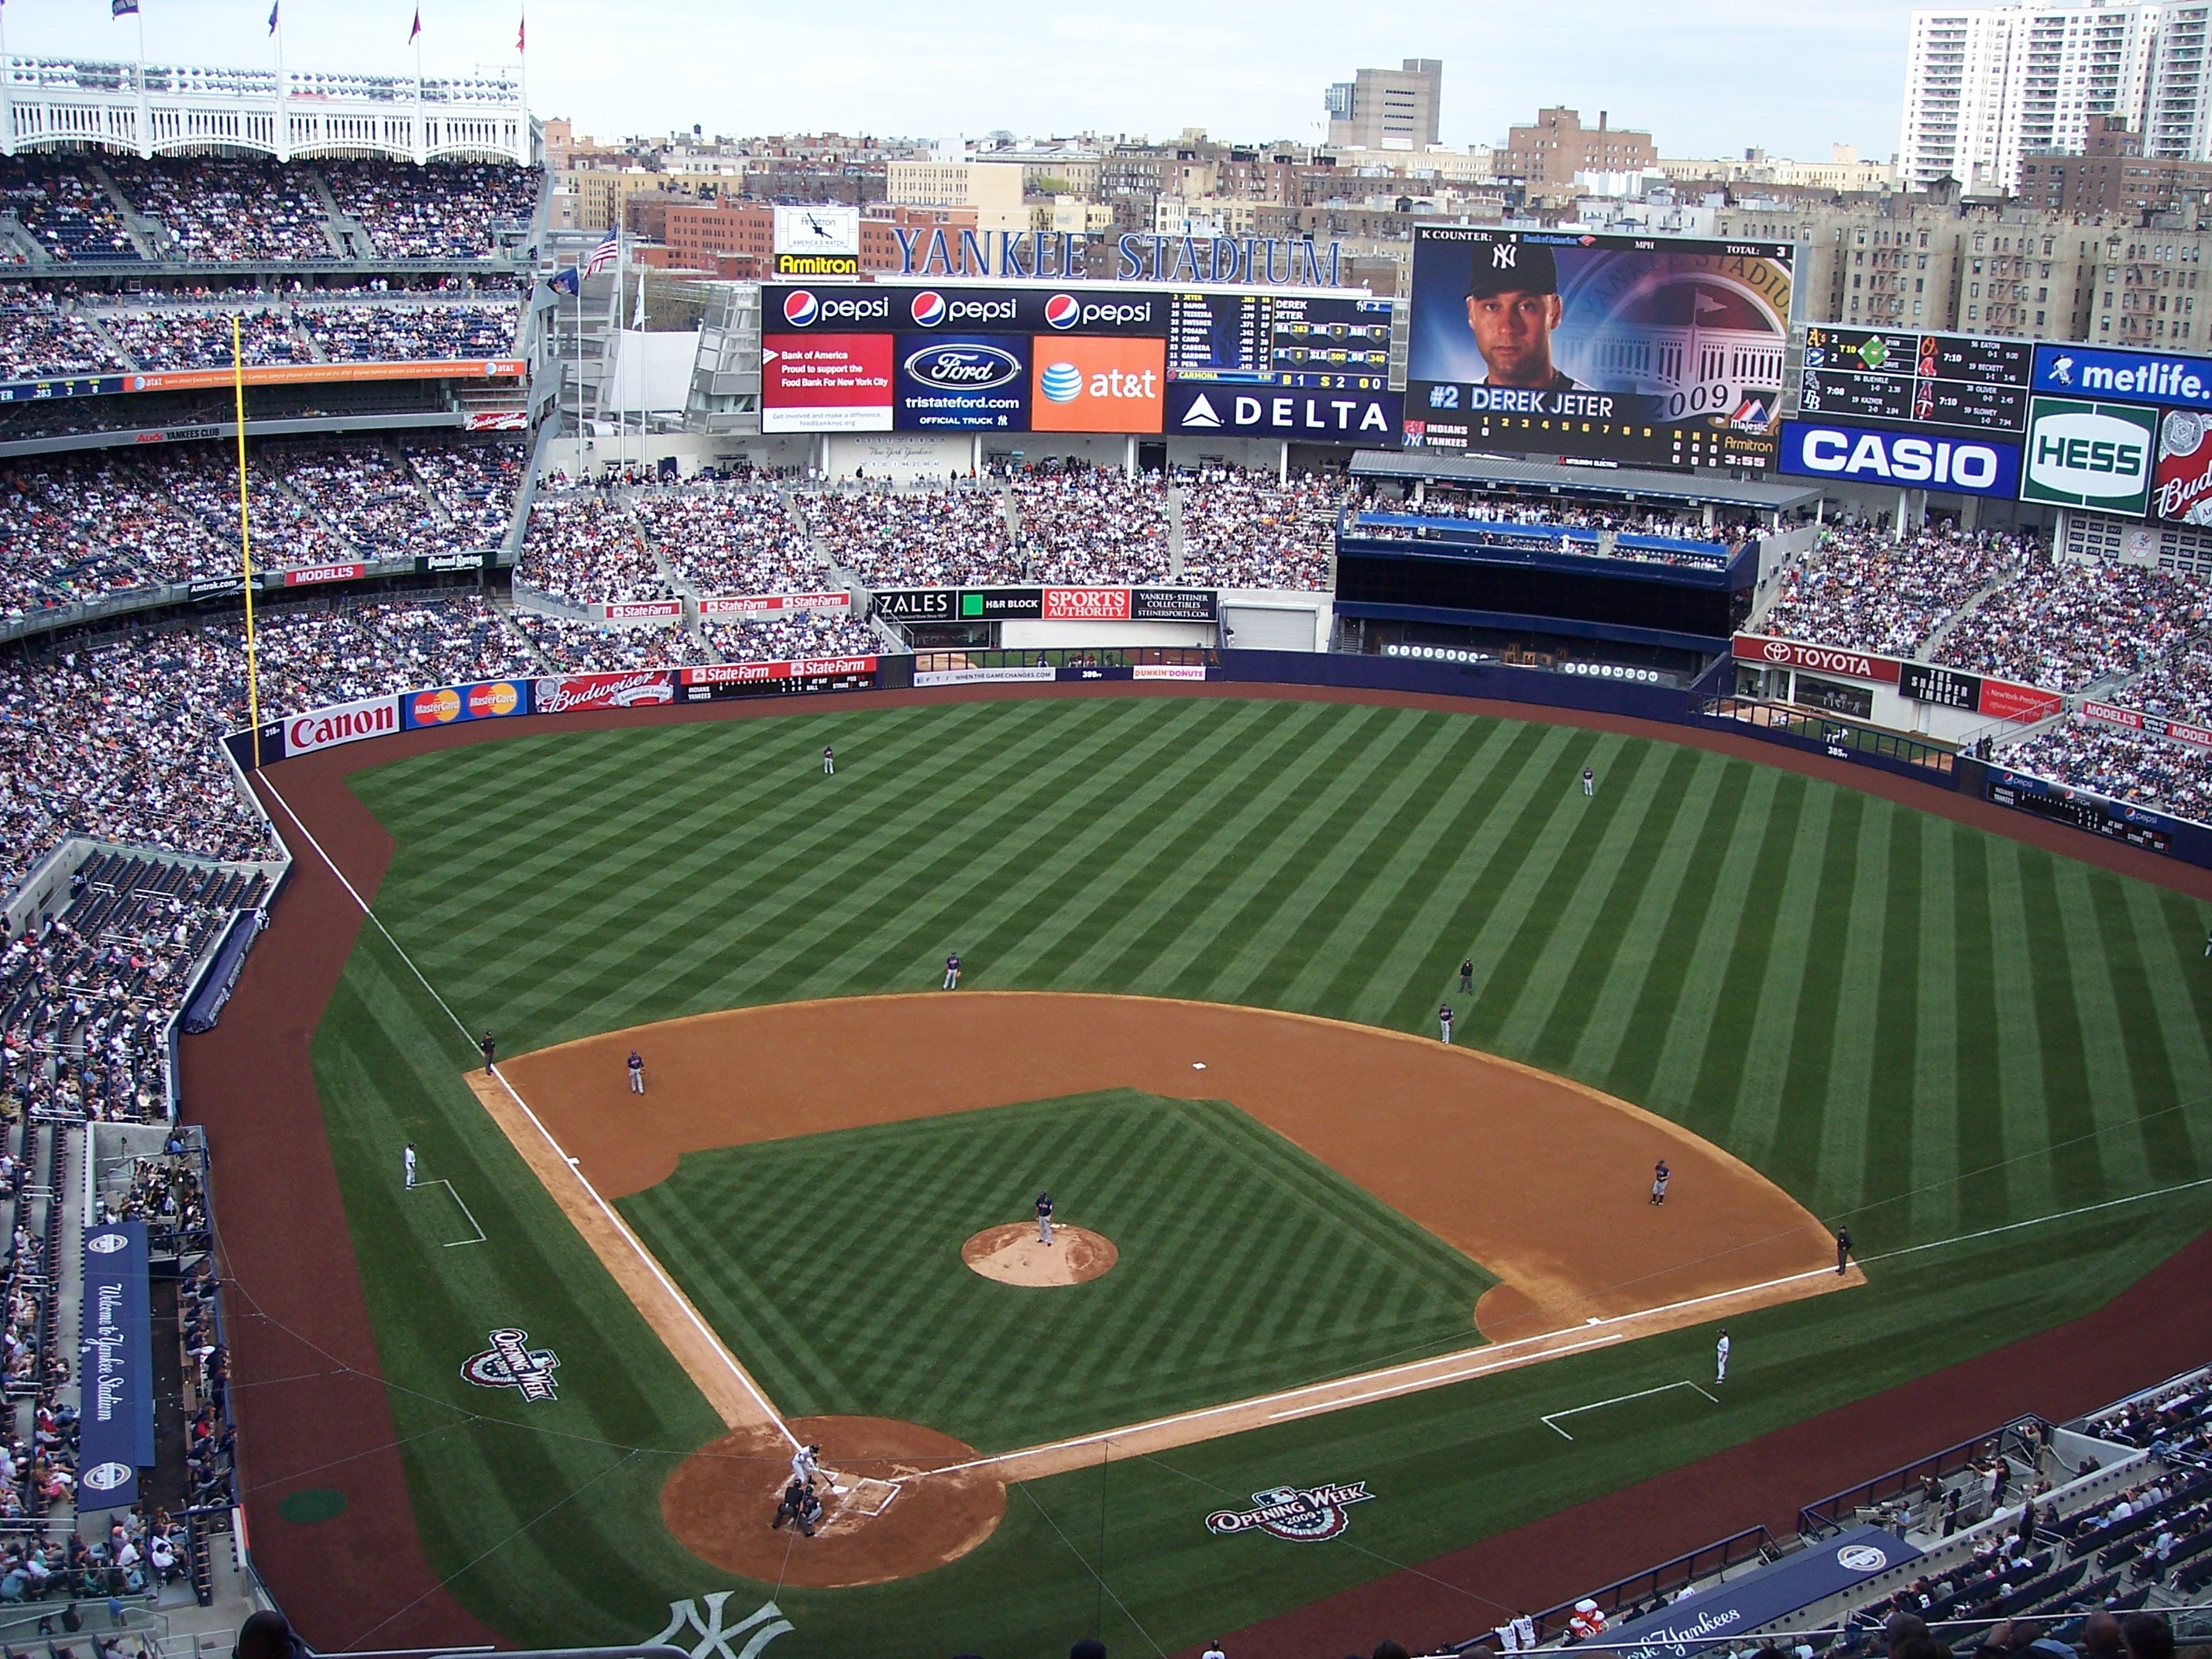 The Yankee Stadium